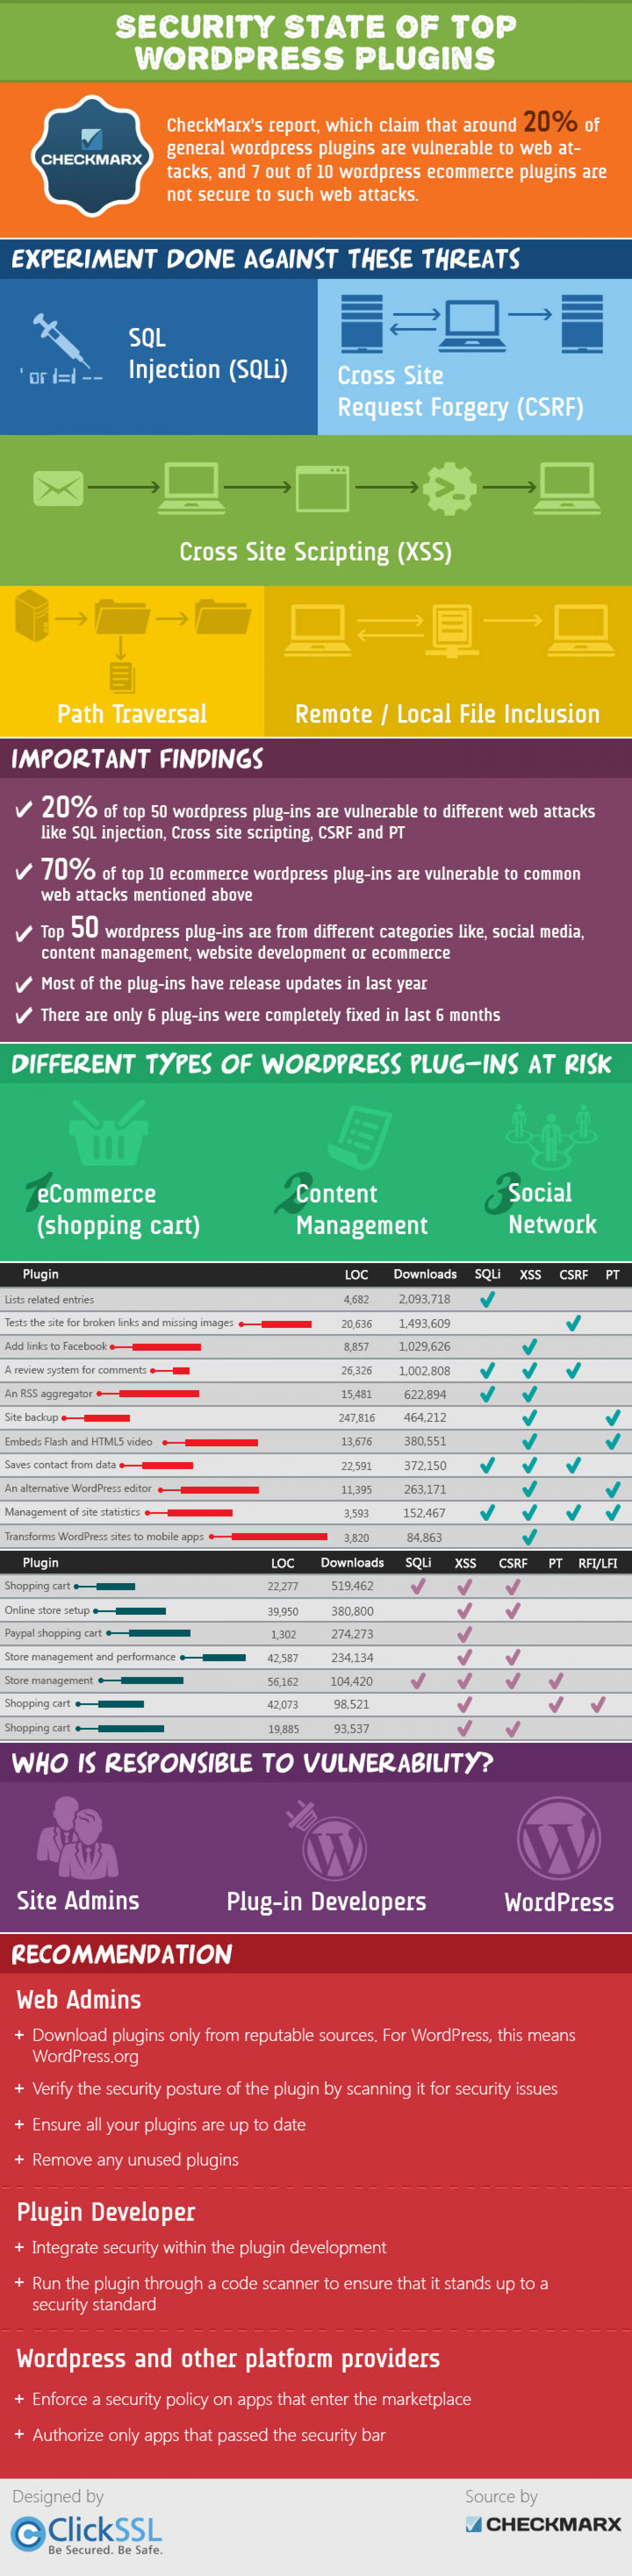 Top WordPress Plugins are Vulnerable – Reported by CheckMarx Infographic